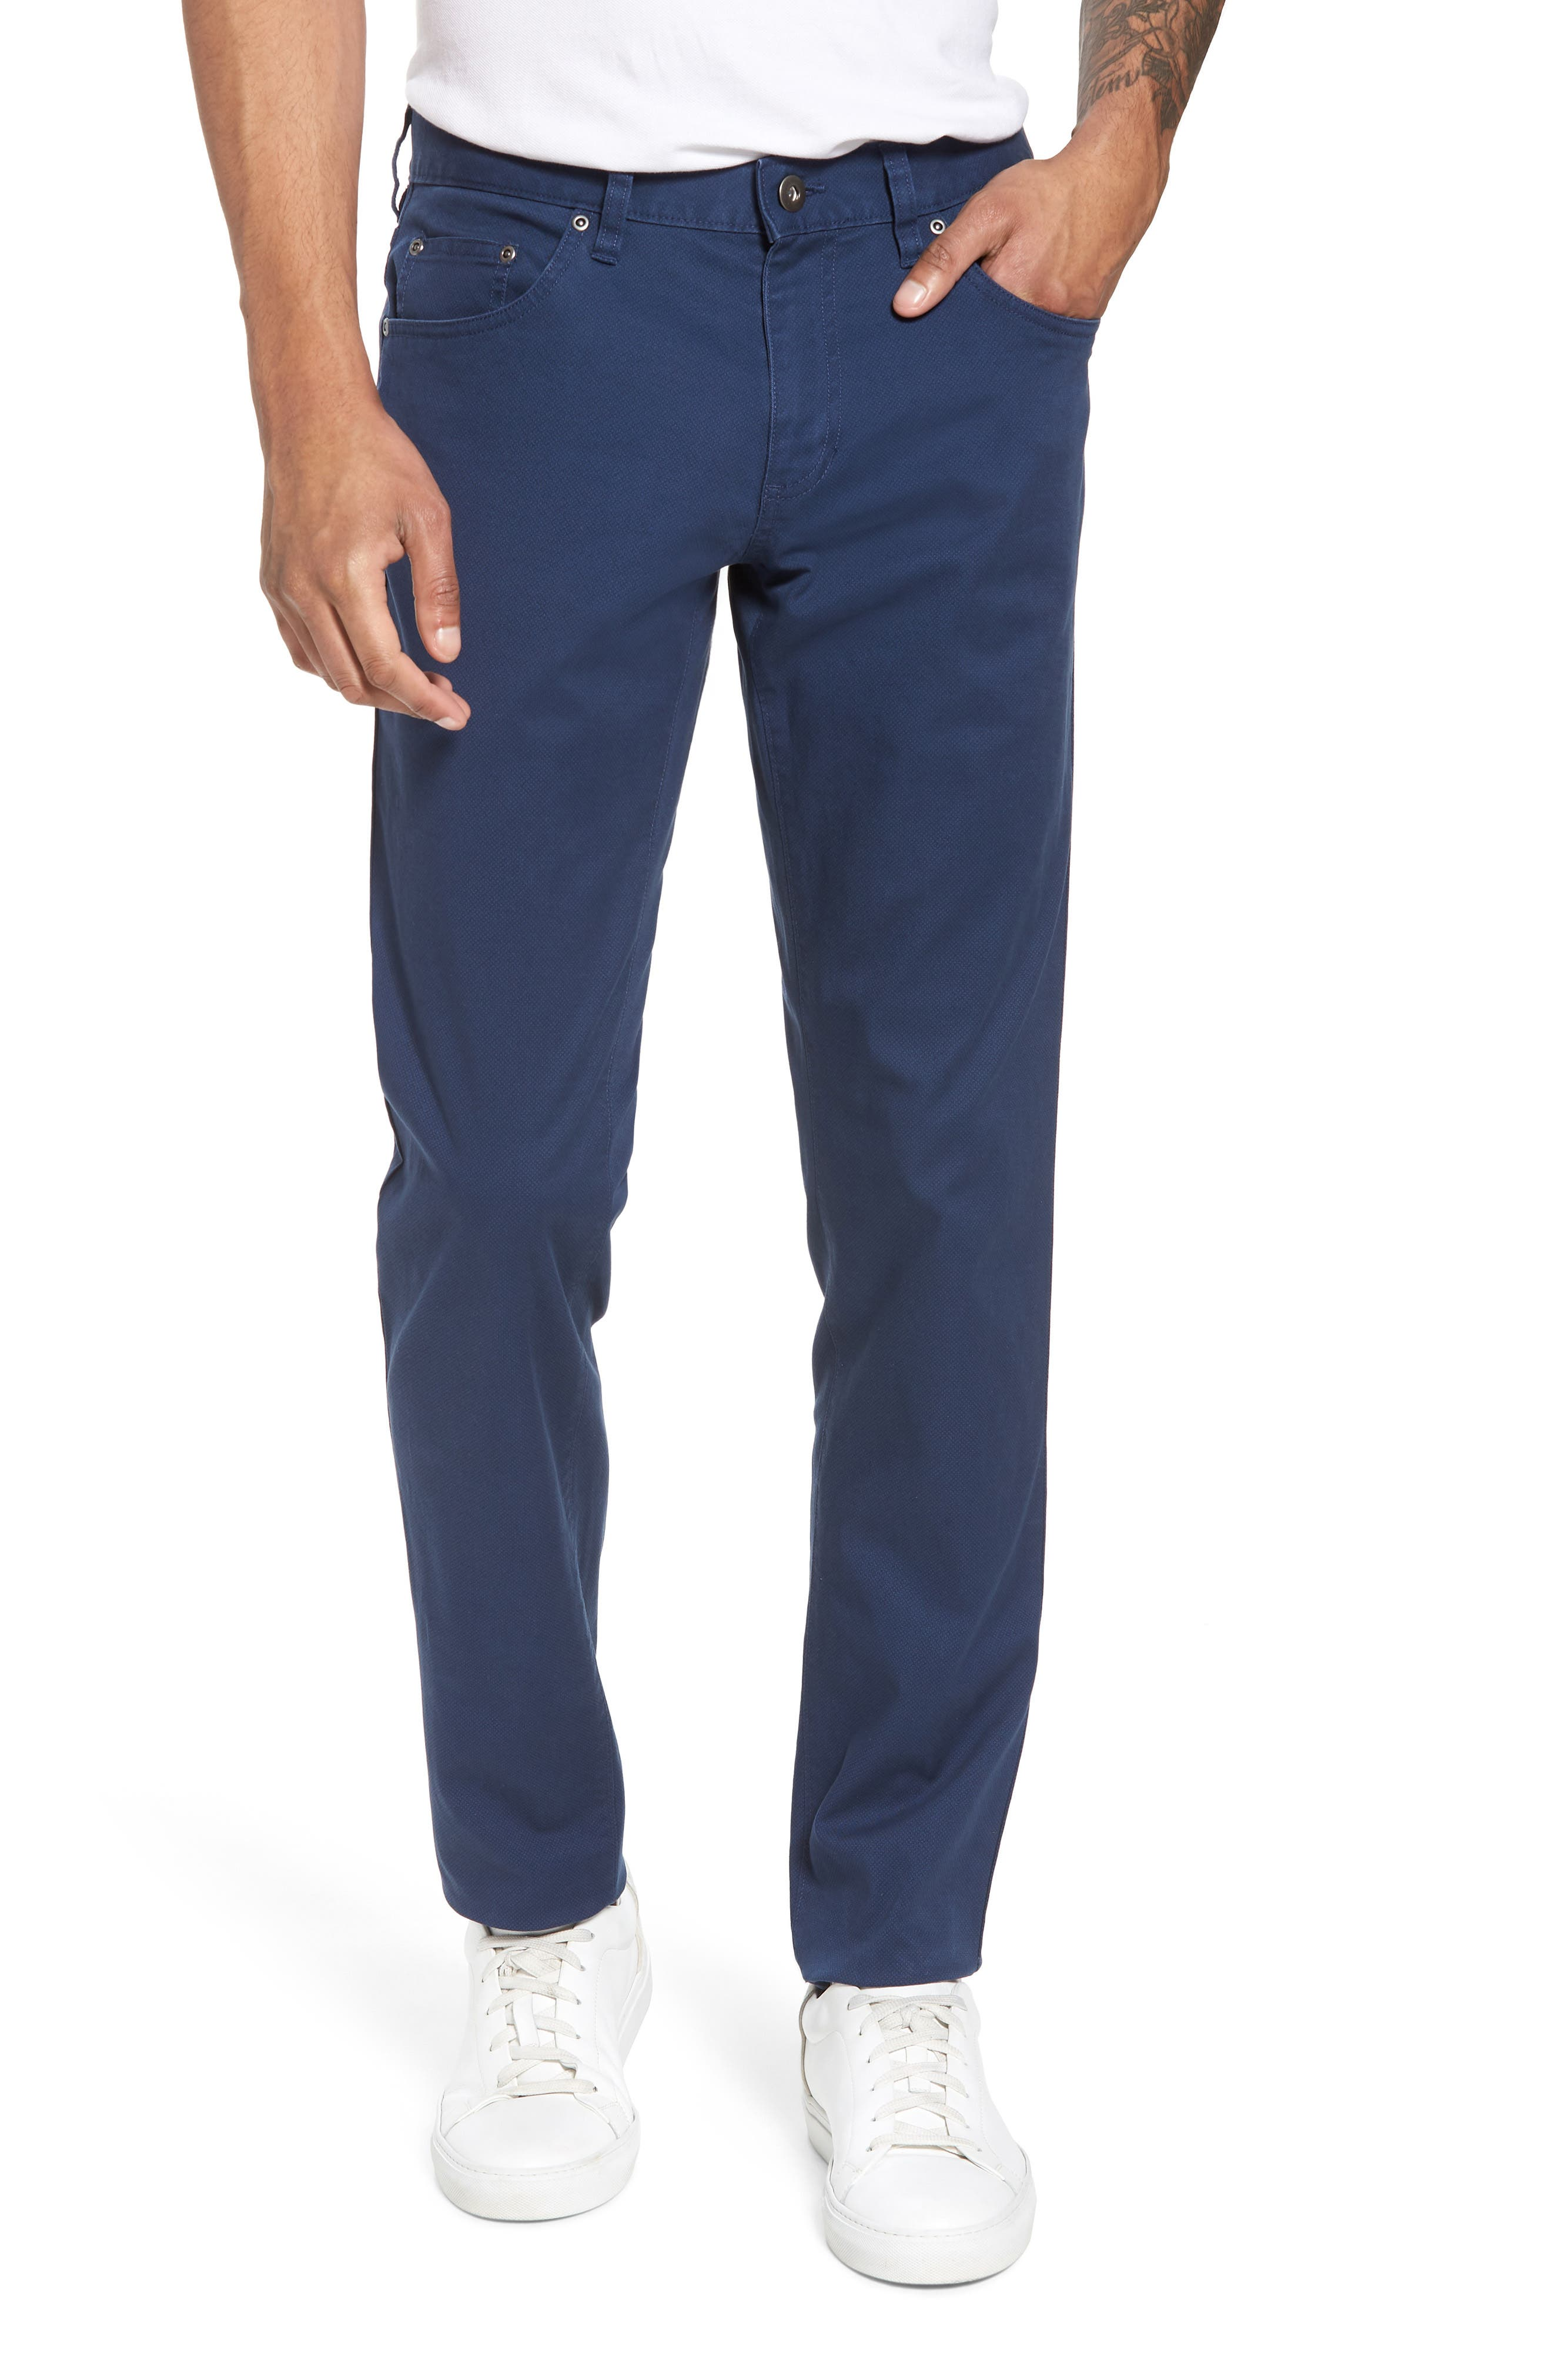 Nordstrom Men's Shop Textured Stretch Cotton Pants